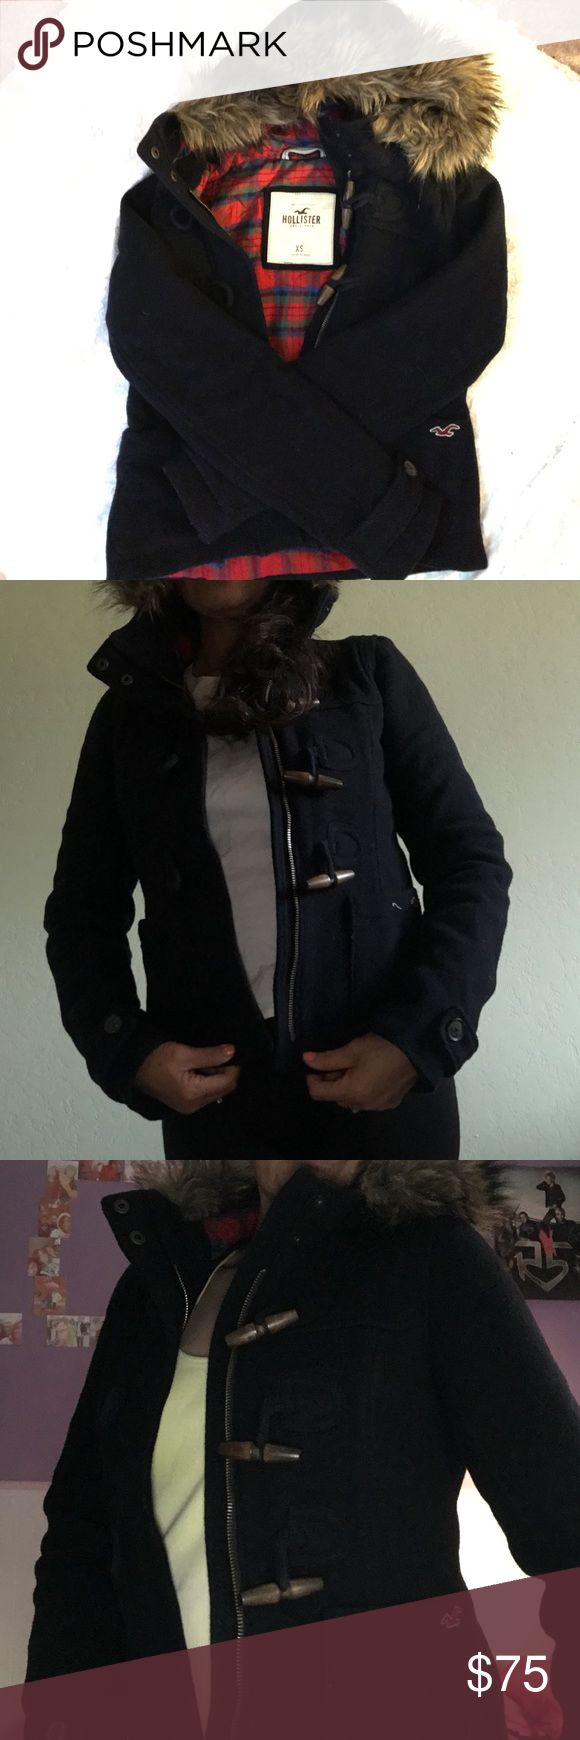 Hollister coats with hoodie XS very cute and cozy also nice and warm , navy blue, wore once. Plaid inside , fur hood Hollister Jackets & Coats Jean Jackets